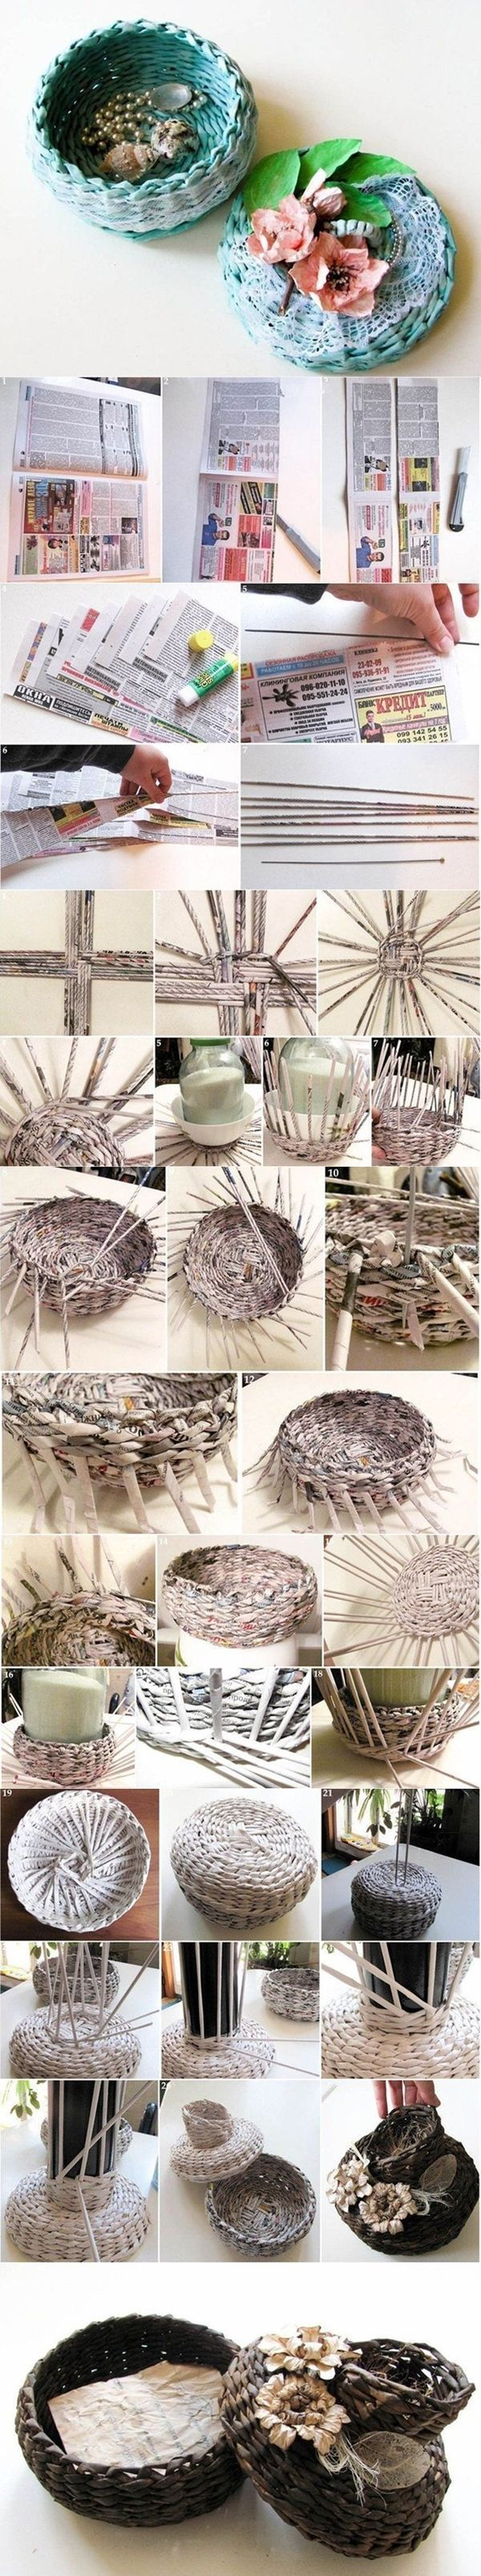 DIY Covered Woven Basket from Newspape